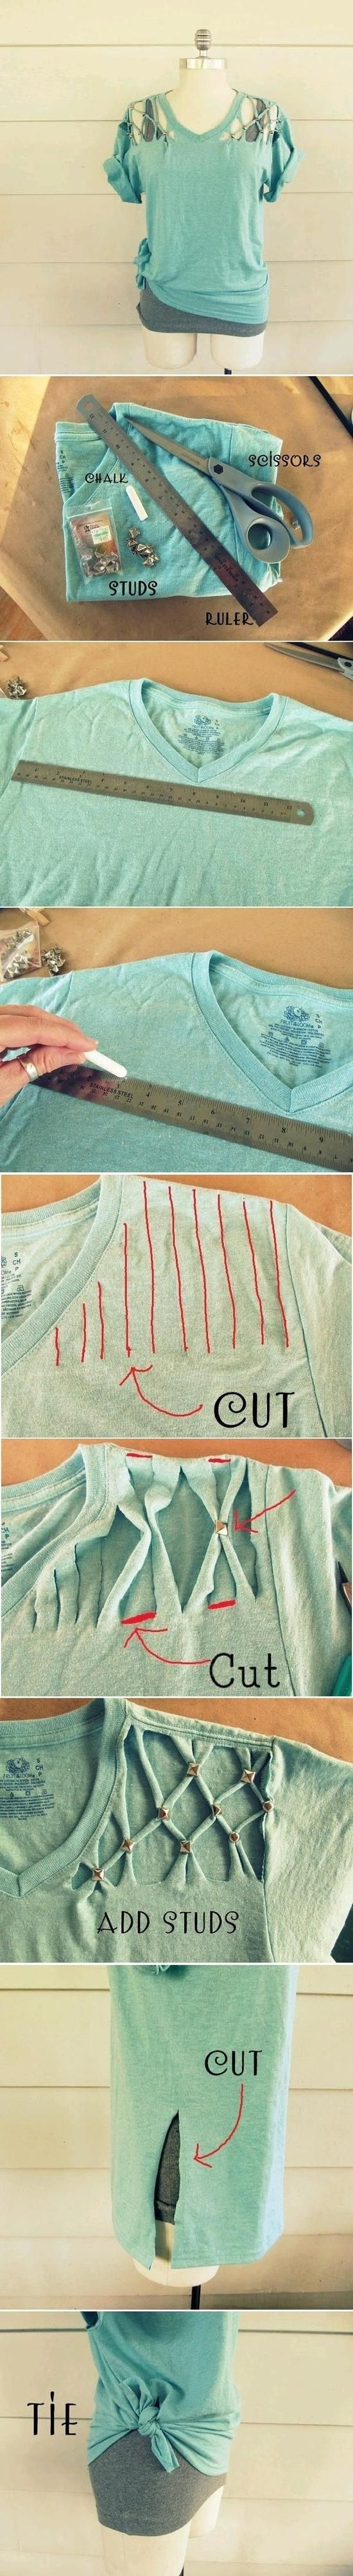 DIY Upcycled Tee into a Studded One! Love this one!